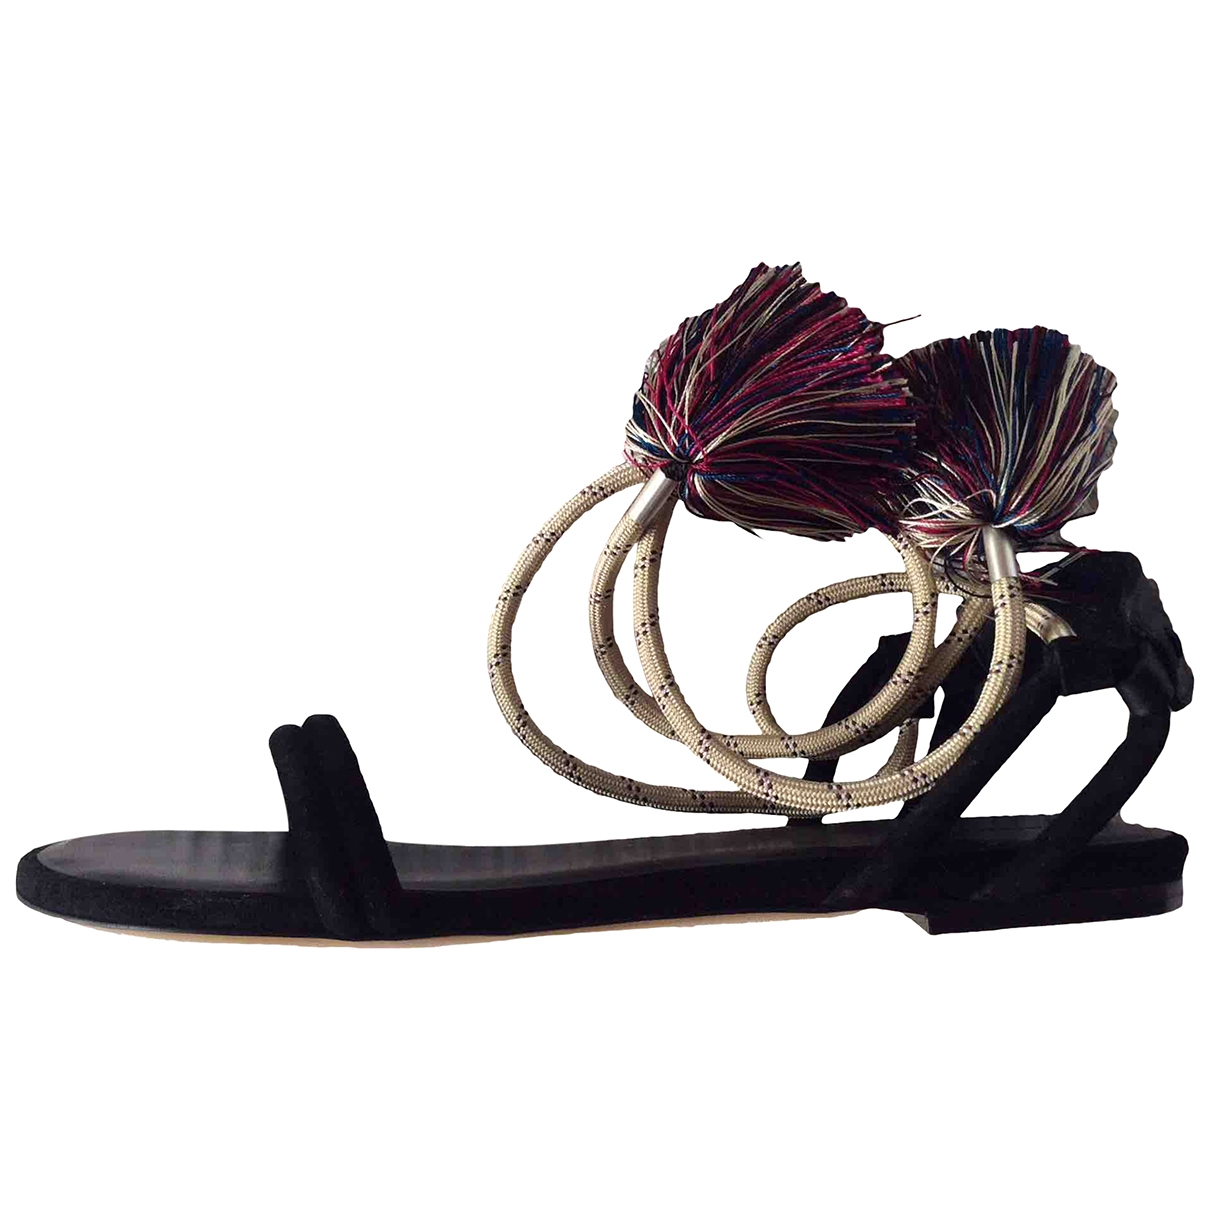 Isabel Marant \N Black Leather Sandals for Women 37 EU